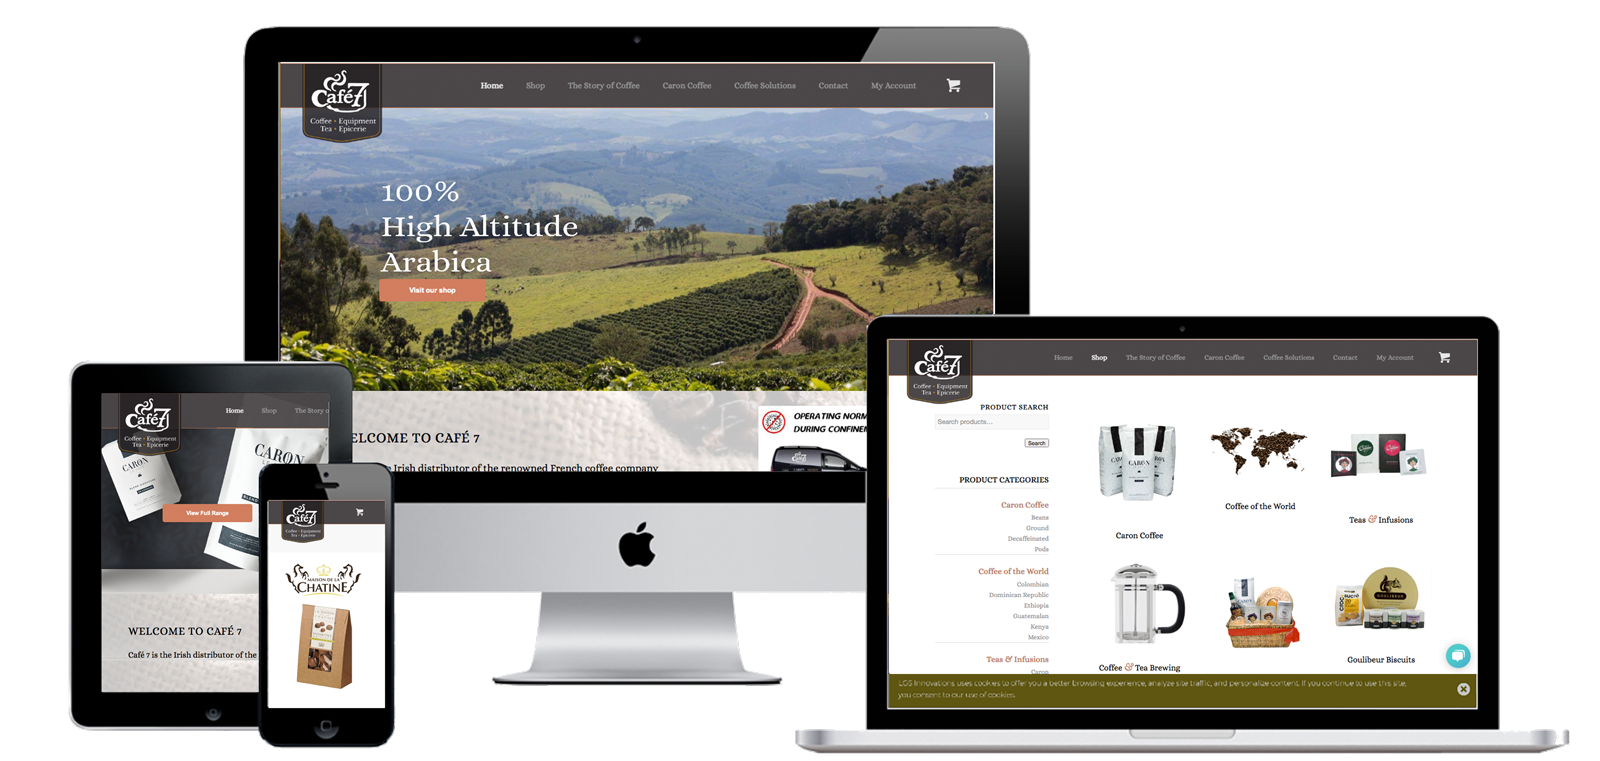 A responsive ecommerce website, running on WordPress, designed and launched by iSupply's web team